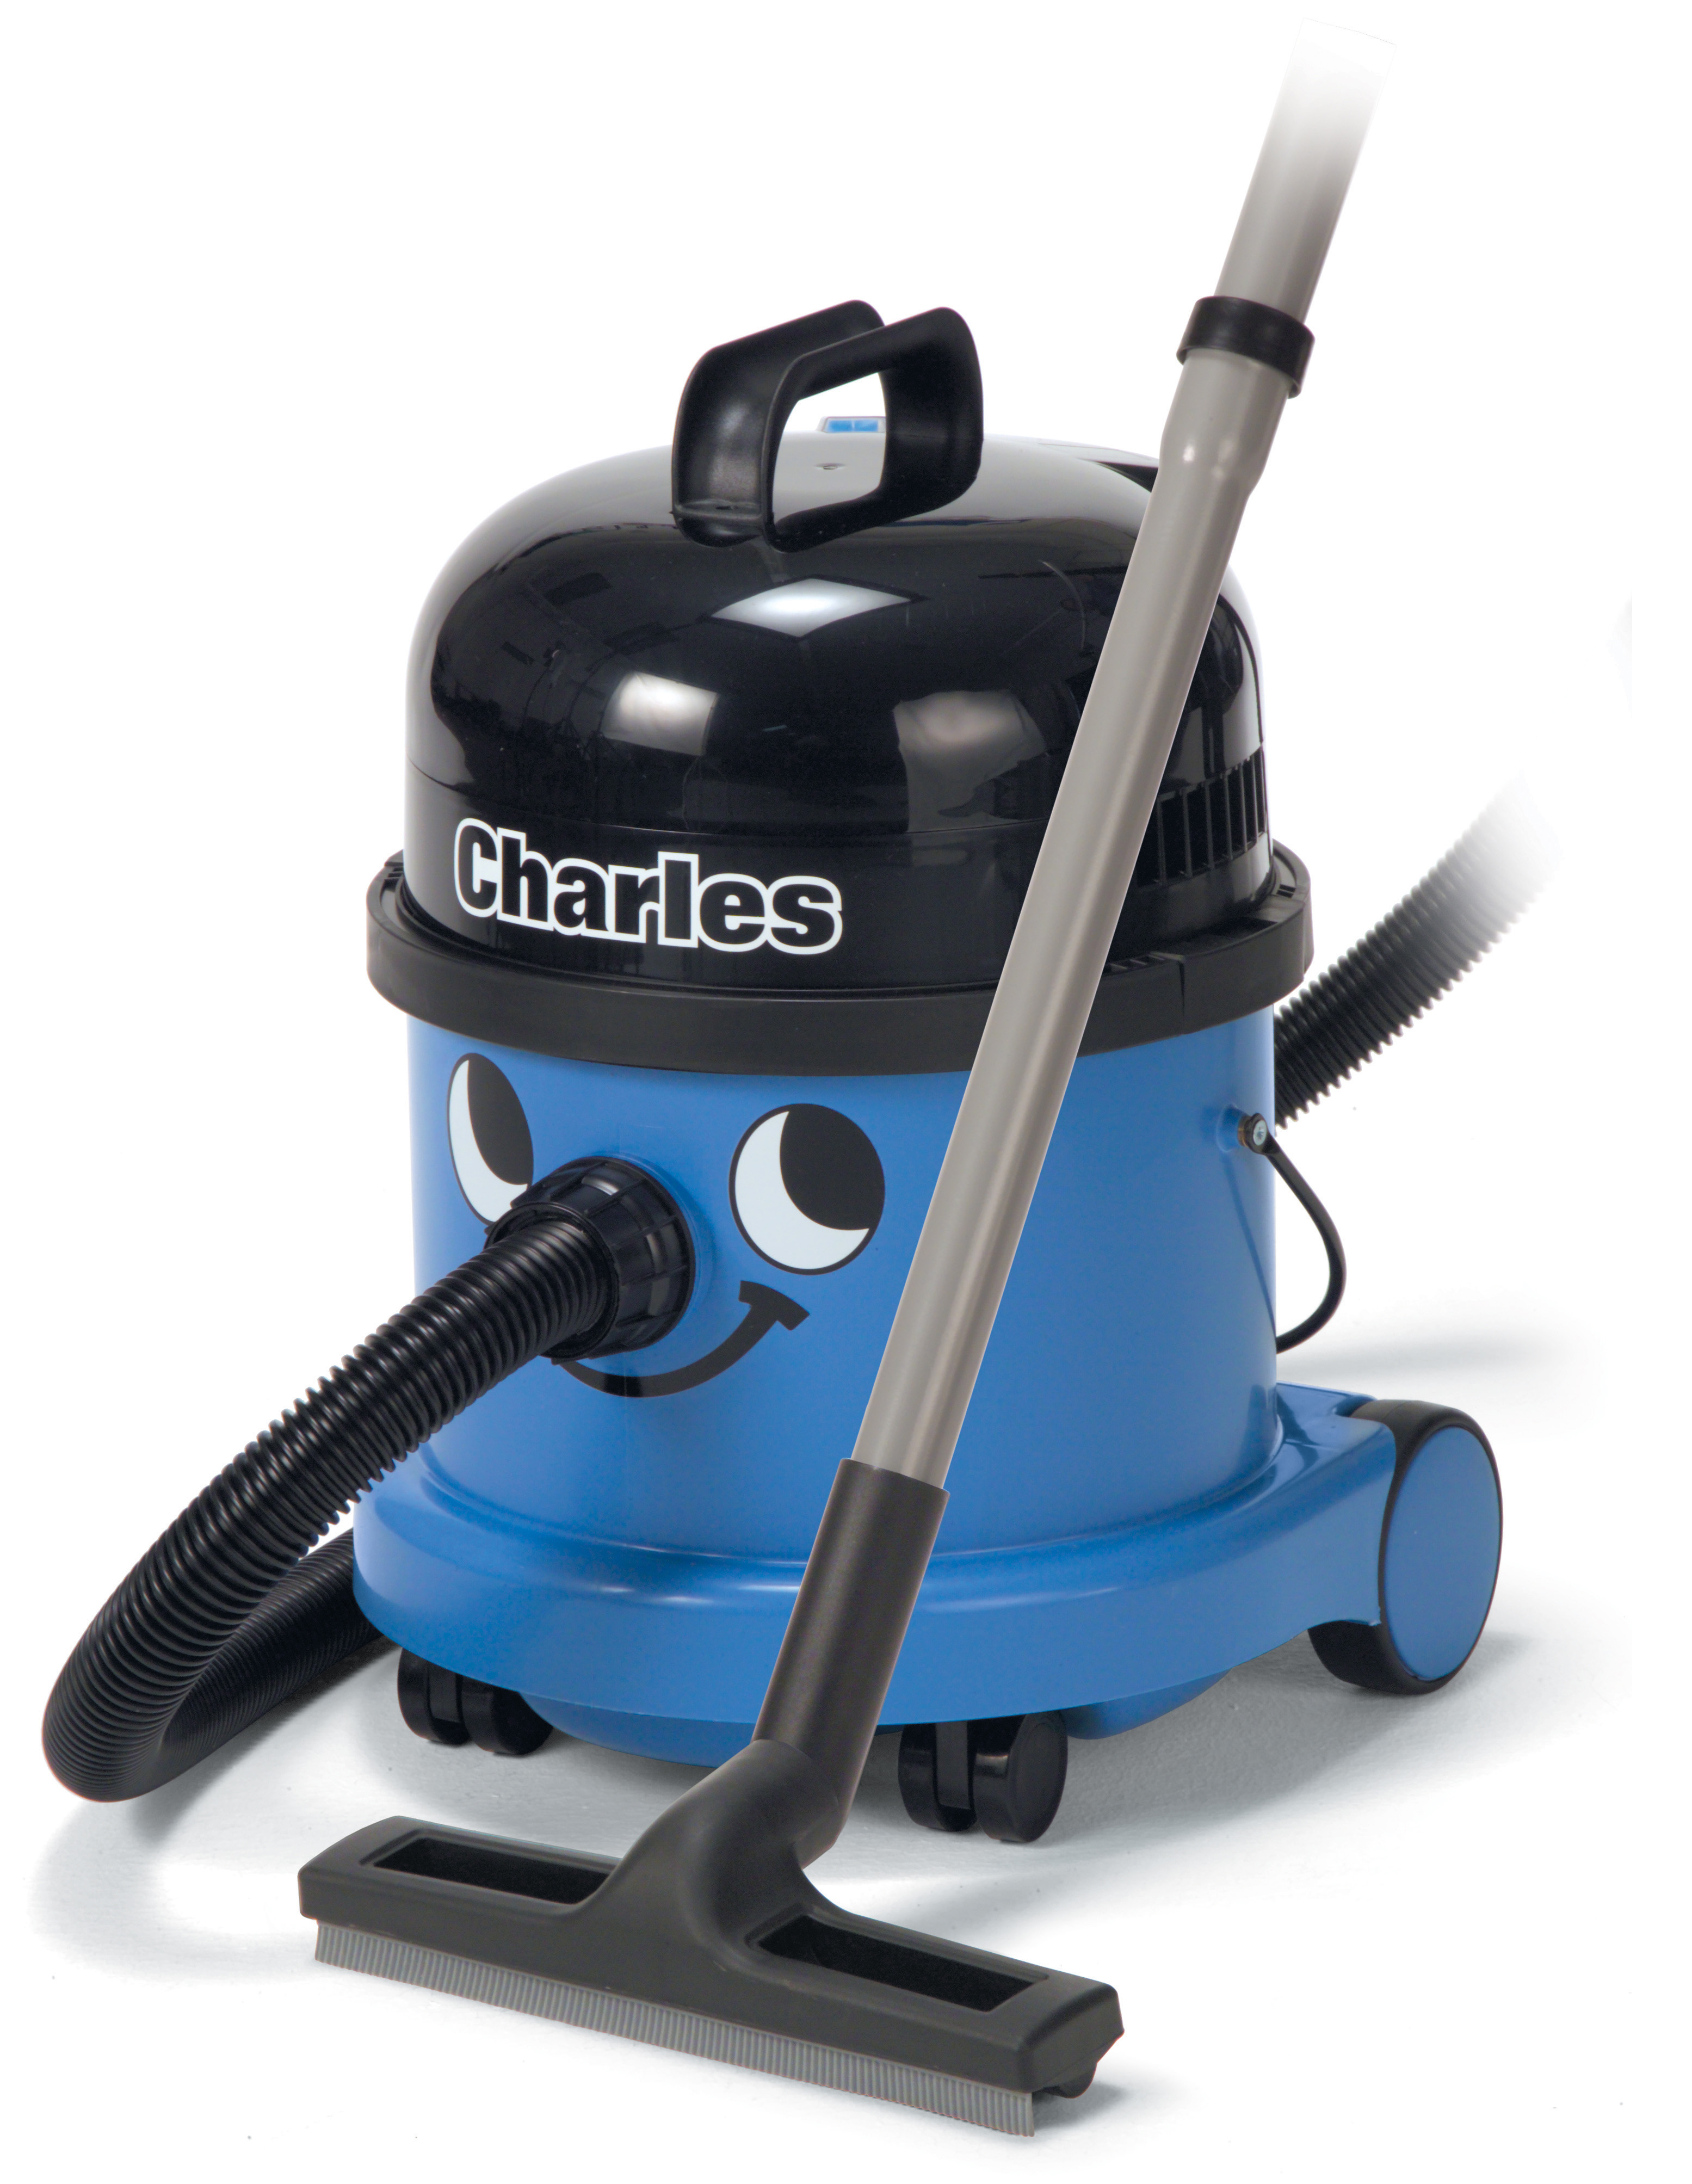 Charles Wet and Dry Vac includes kit